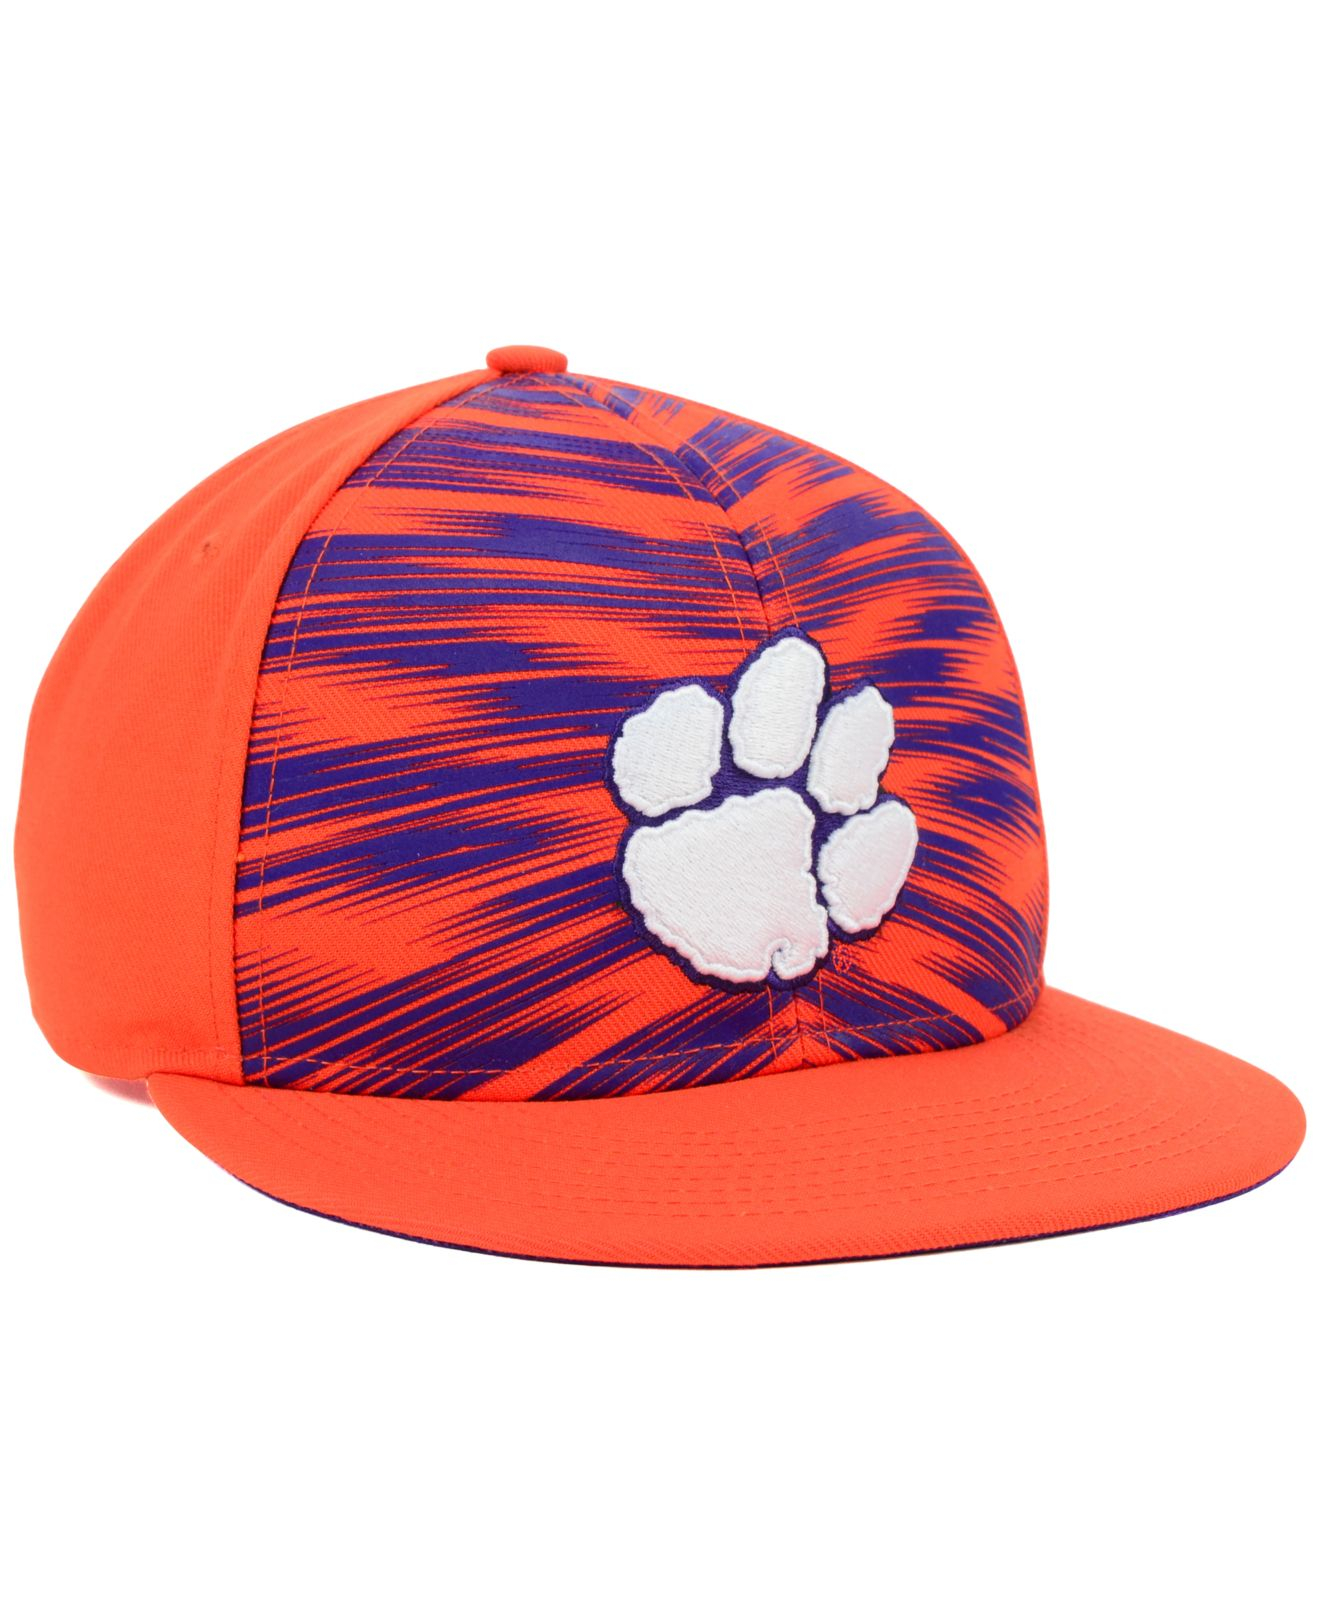 51bd8a5758f new style youth nike orange clemson tigers sideline performance adjustable  hat 65203 c1270  reduced lyst nike clemson tigers game day snapback cap in  purple ...